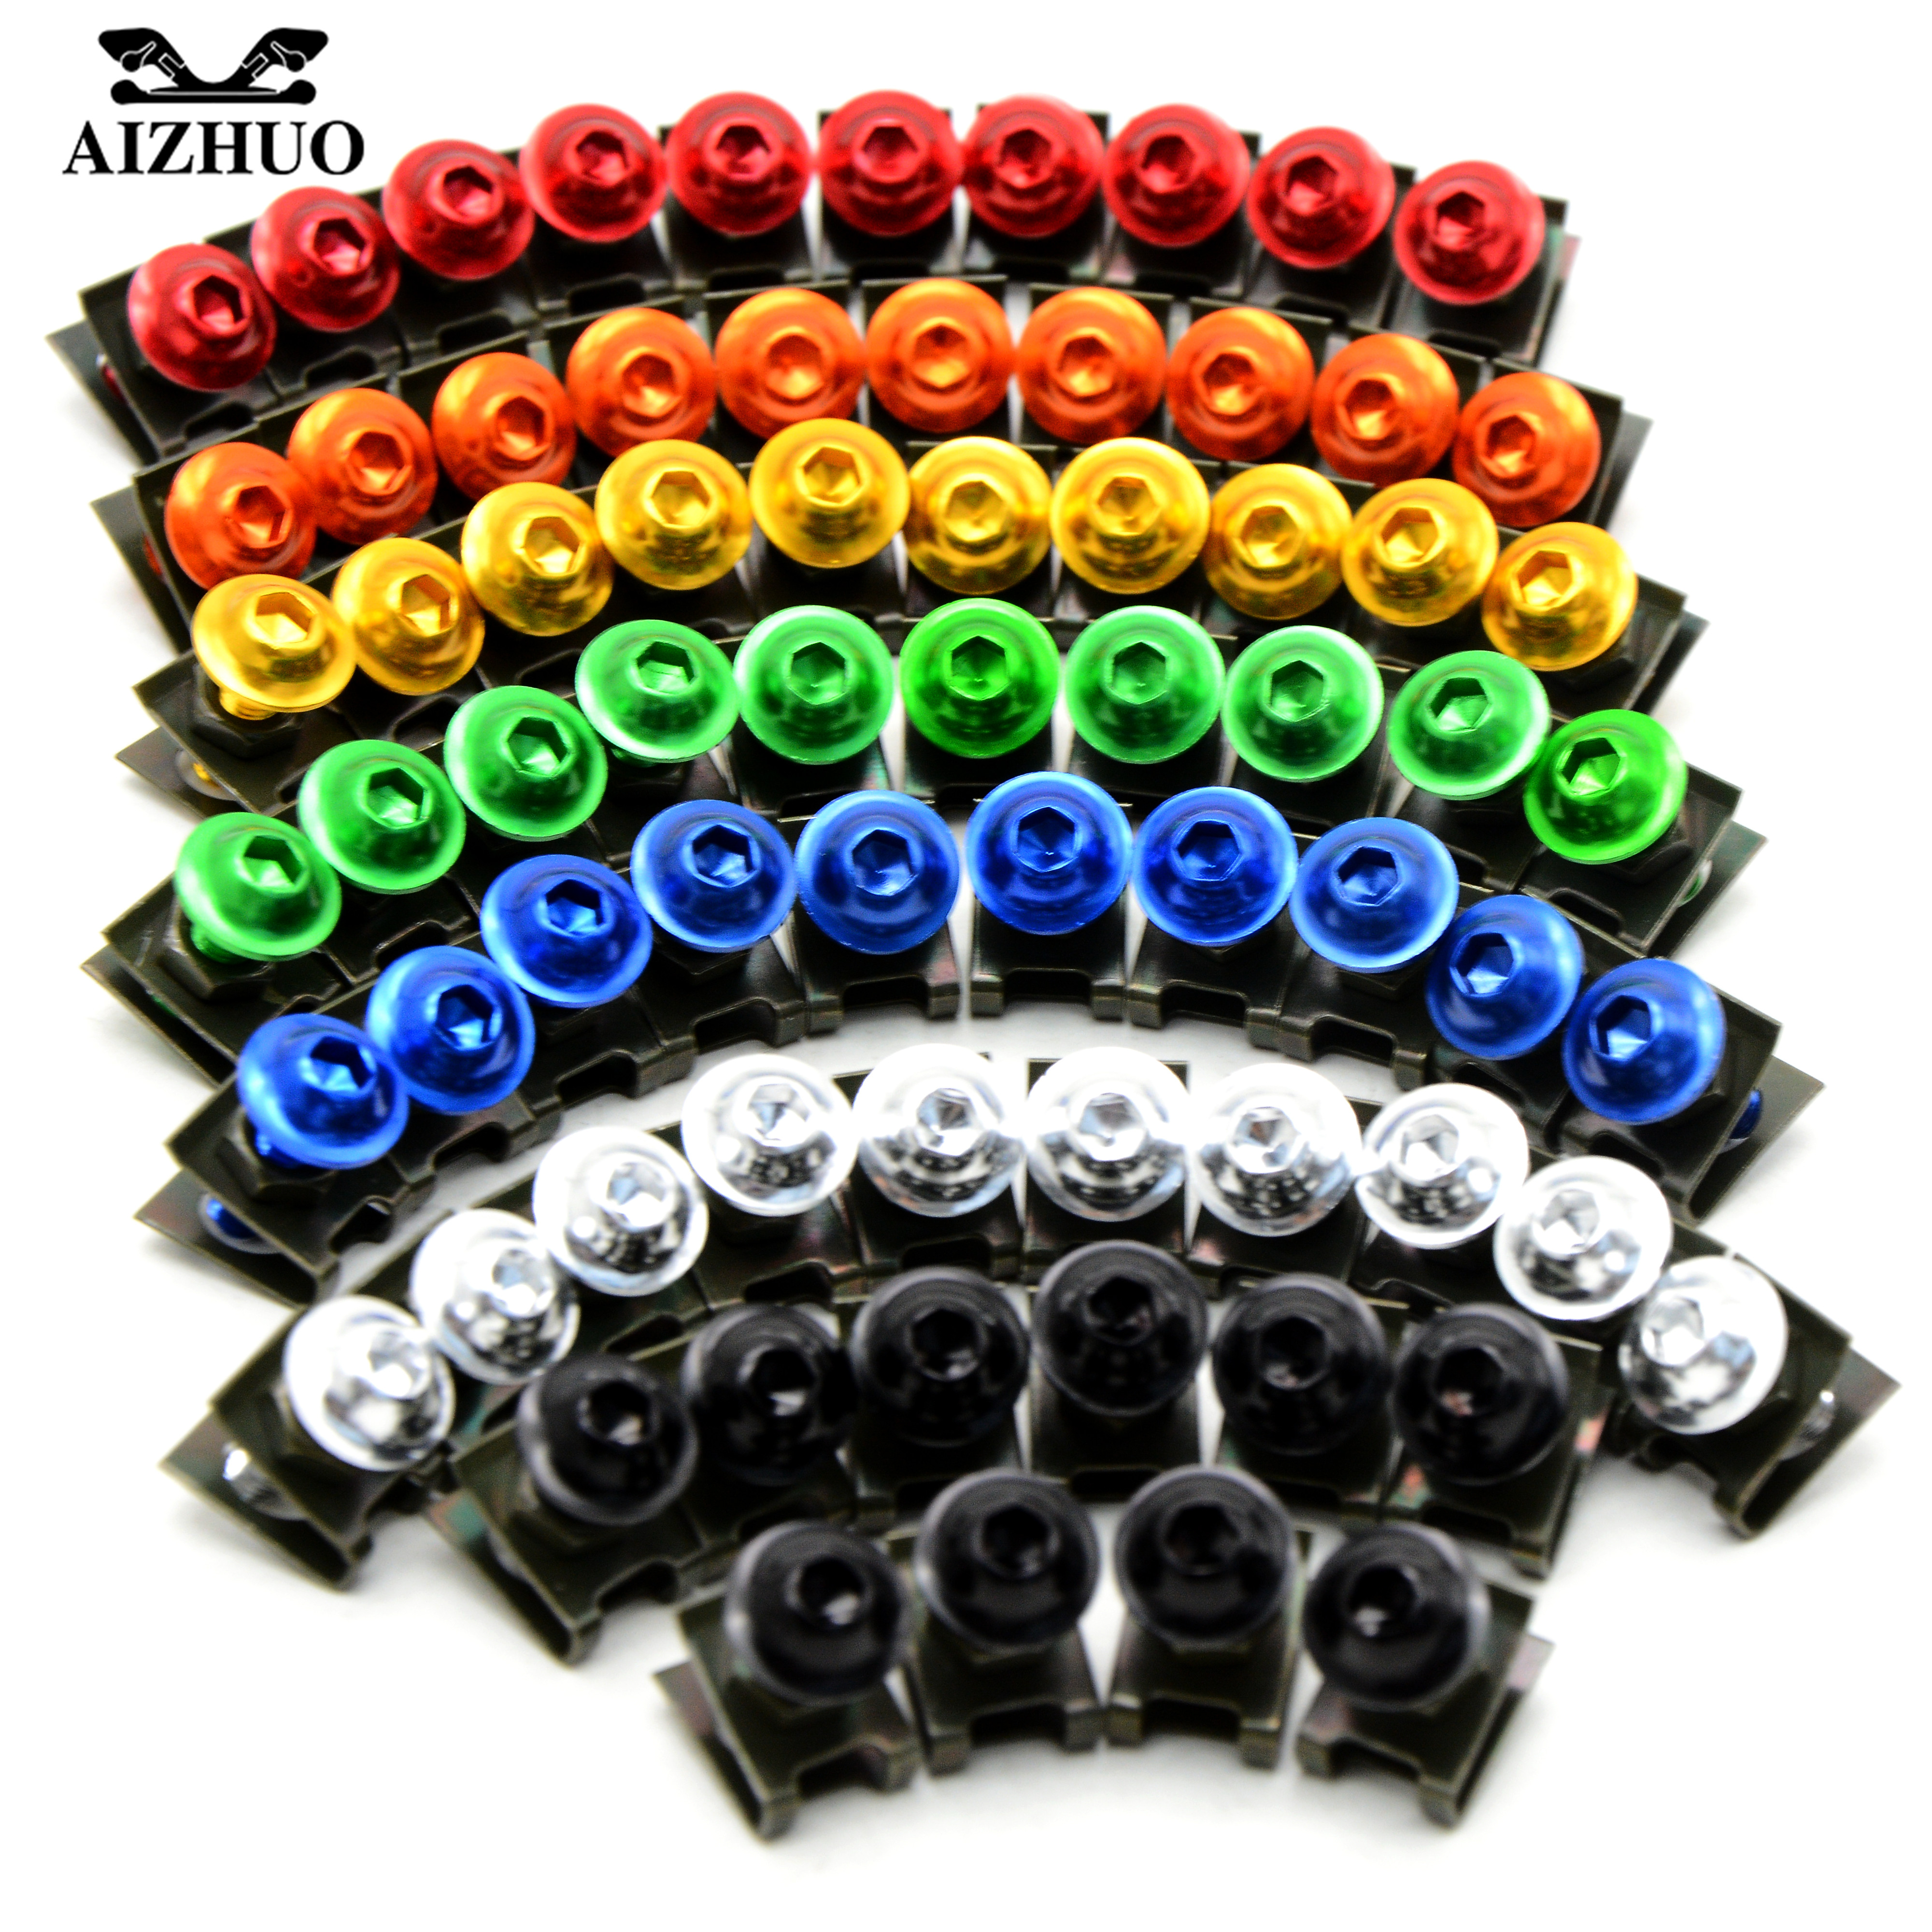 10pcs 6mm Universal Motorcycle Fairing Bolts FOR YAMAHA MT 03 YZF R25 YZF R3 YBR 125 YZF R15 KAWASAKI ZX9R ZX10R ZZR ZXR NINJA in Covers Ornamental Mouldings from Automobiles Motorcycles